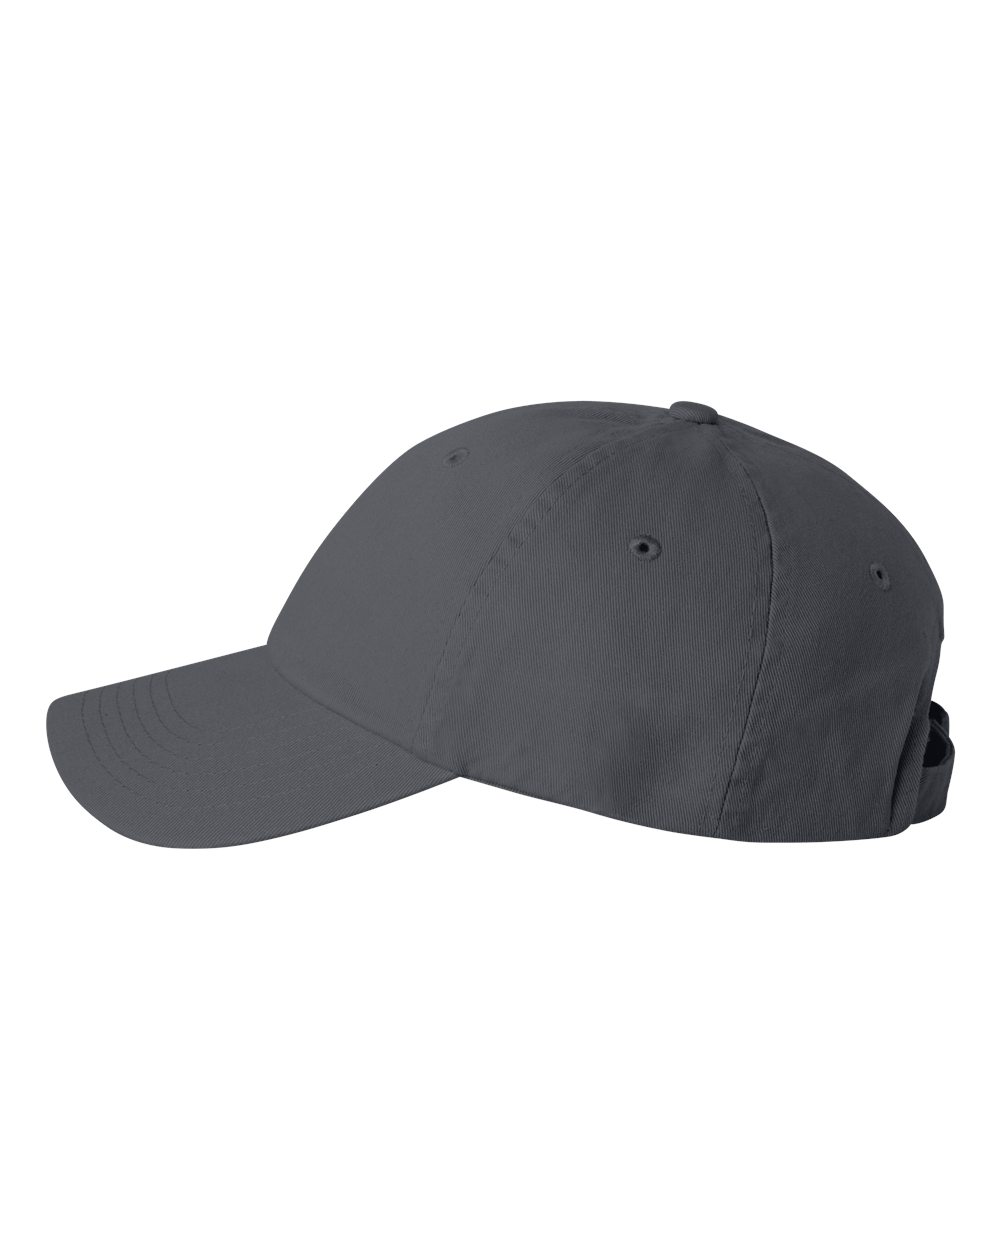 NEW DROP - VIBES Dad Hat - CHARCOAL GRAY